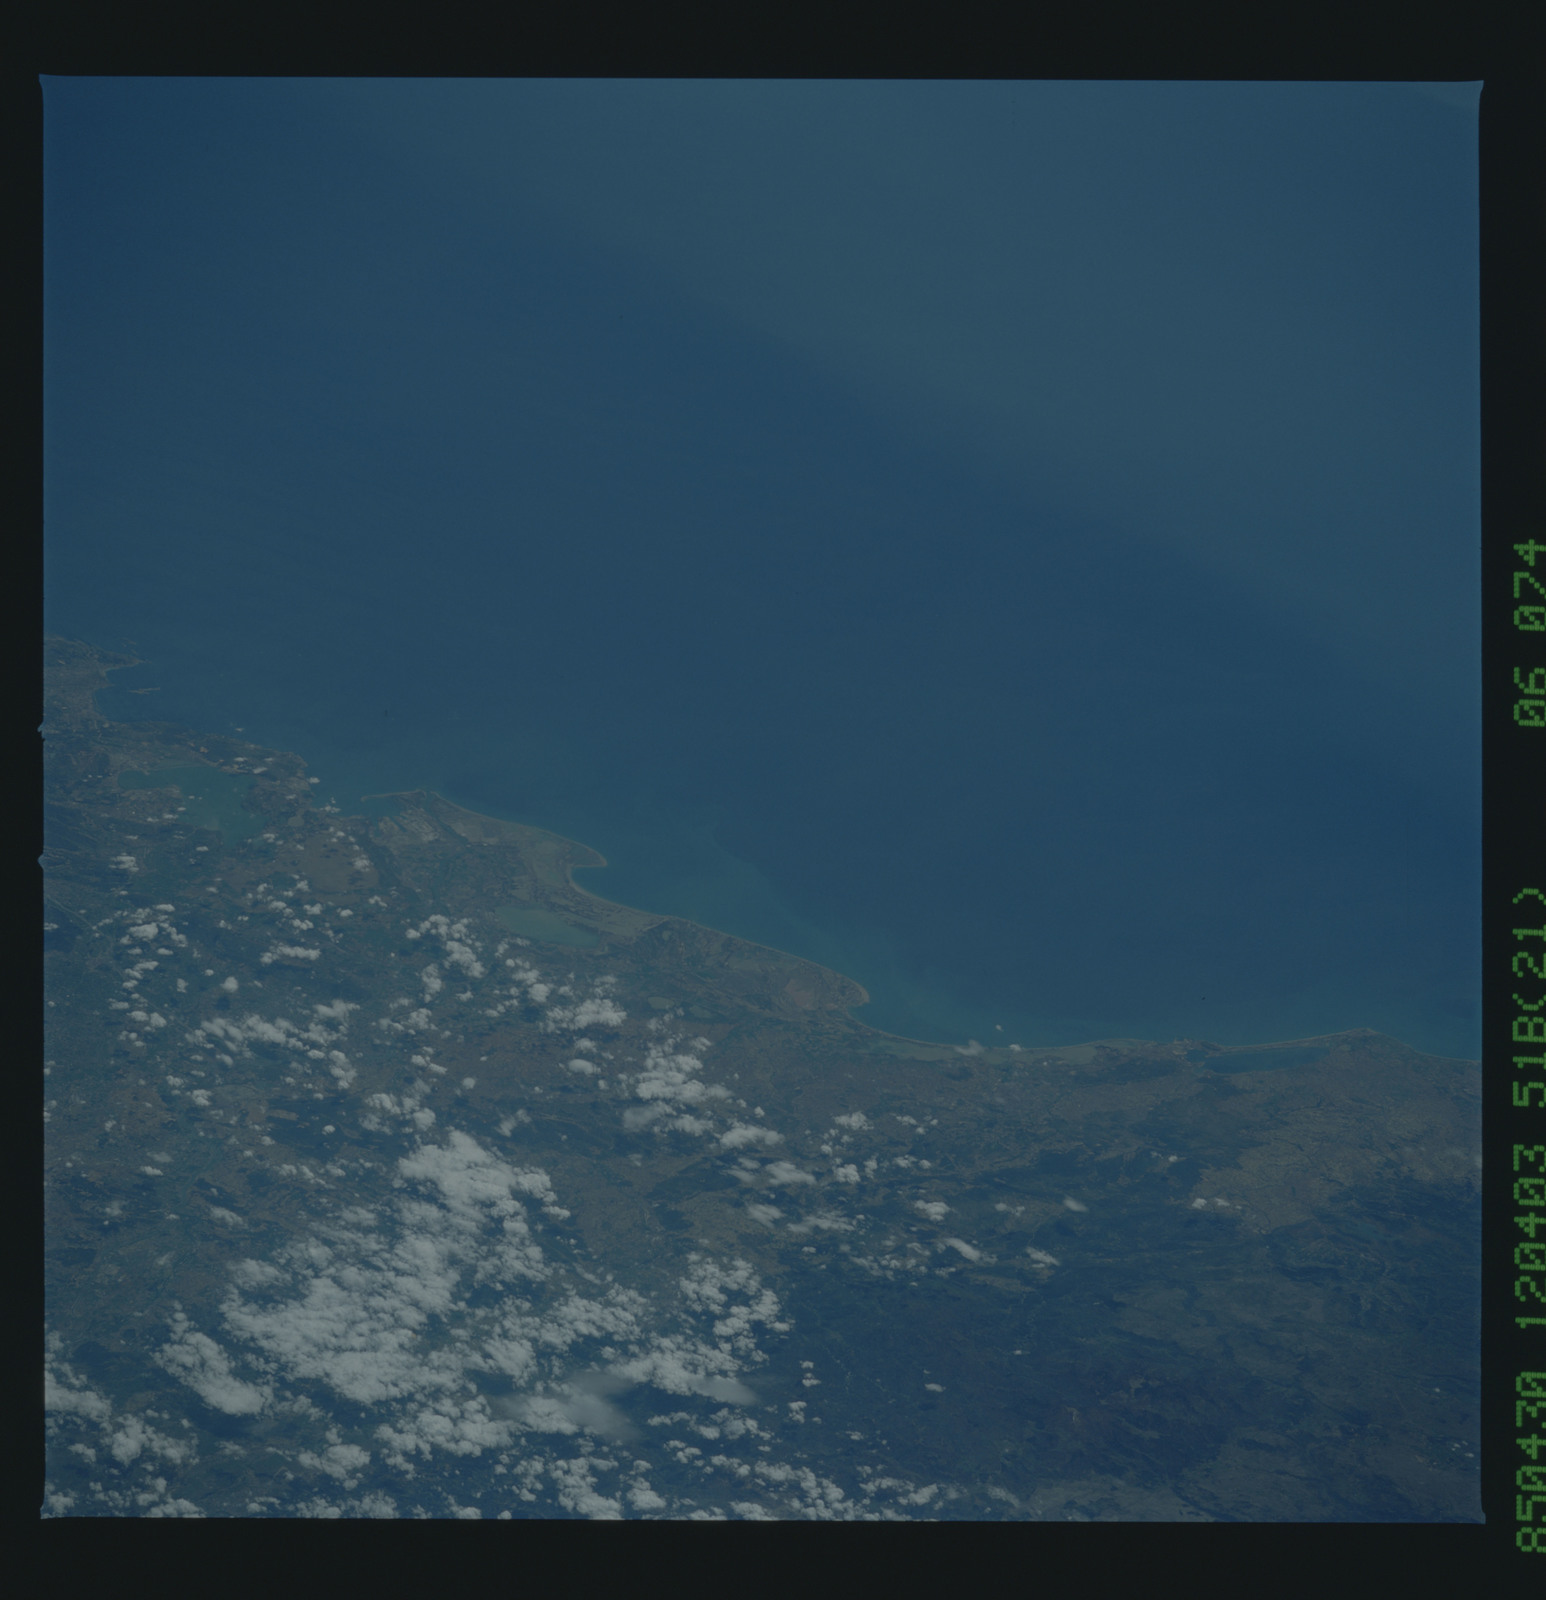 51B-36-074 - STS-51B - 51B earth observation